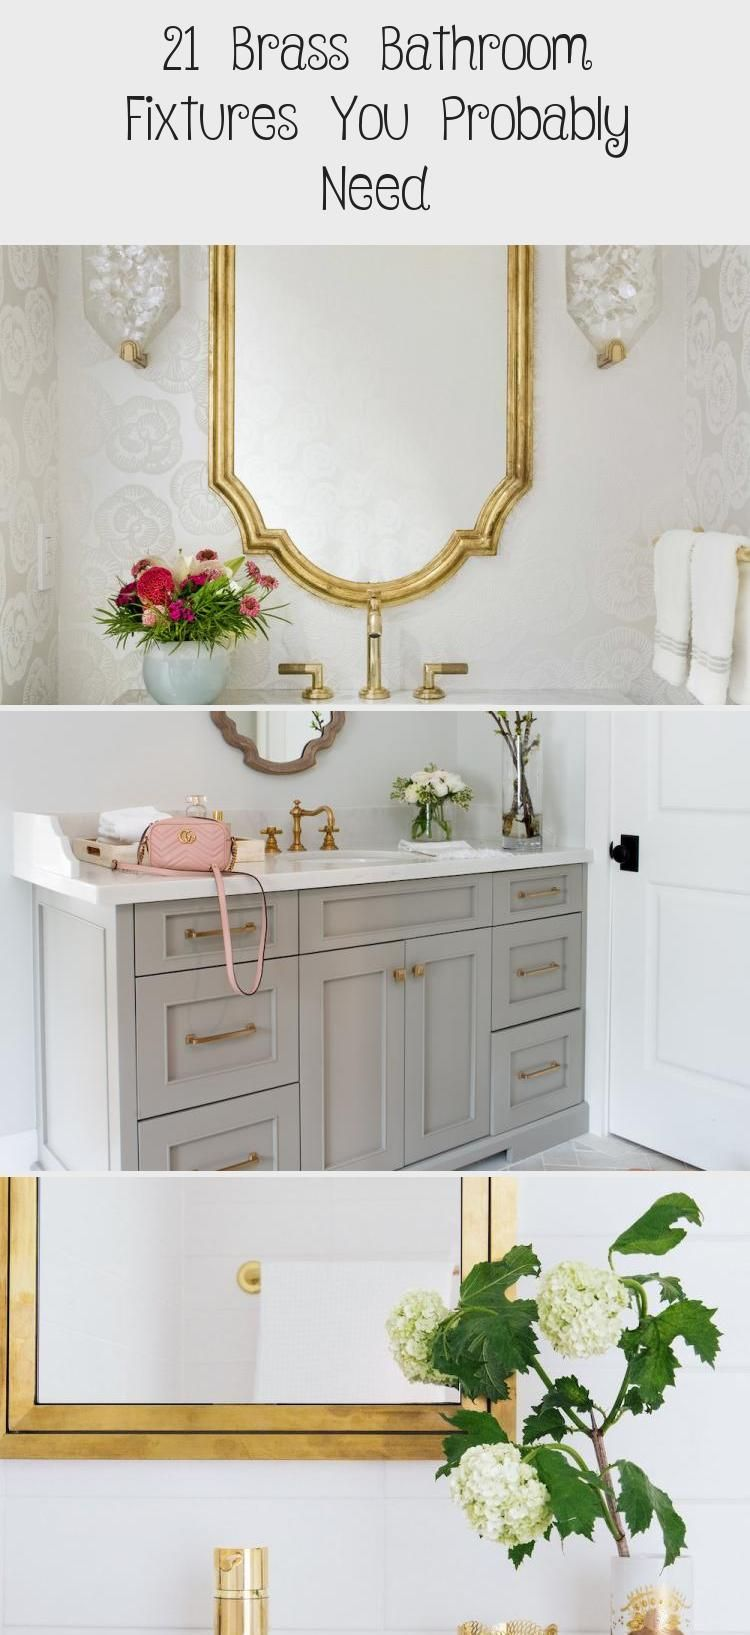 Photo of 21 brass bathroom fixtures you'll probably need – bathrooms